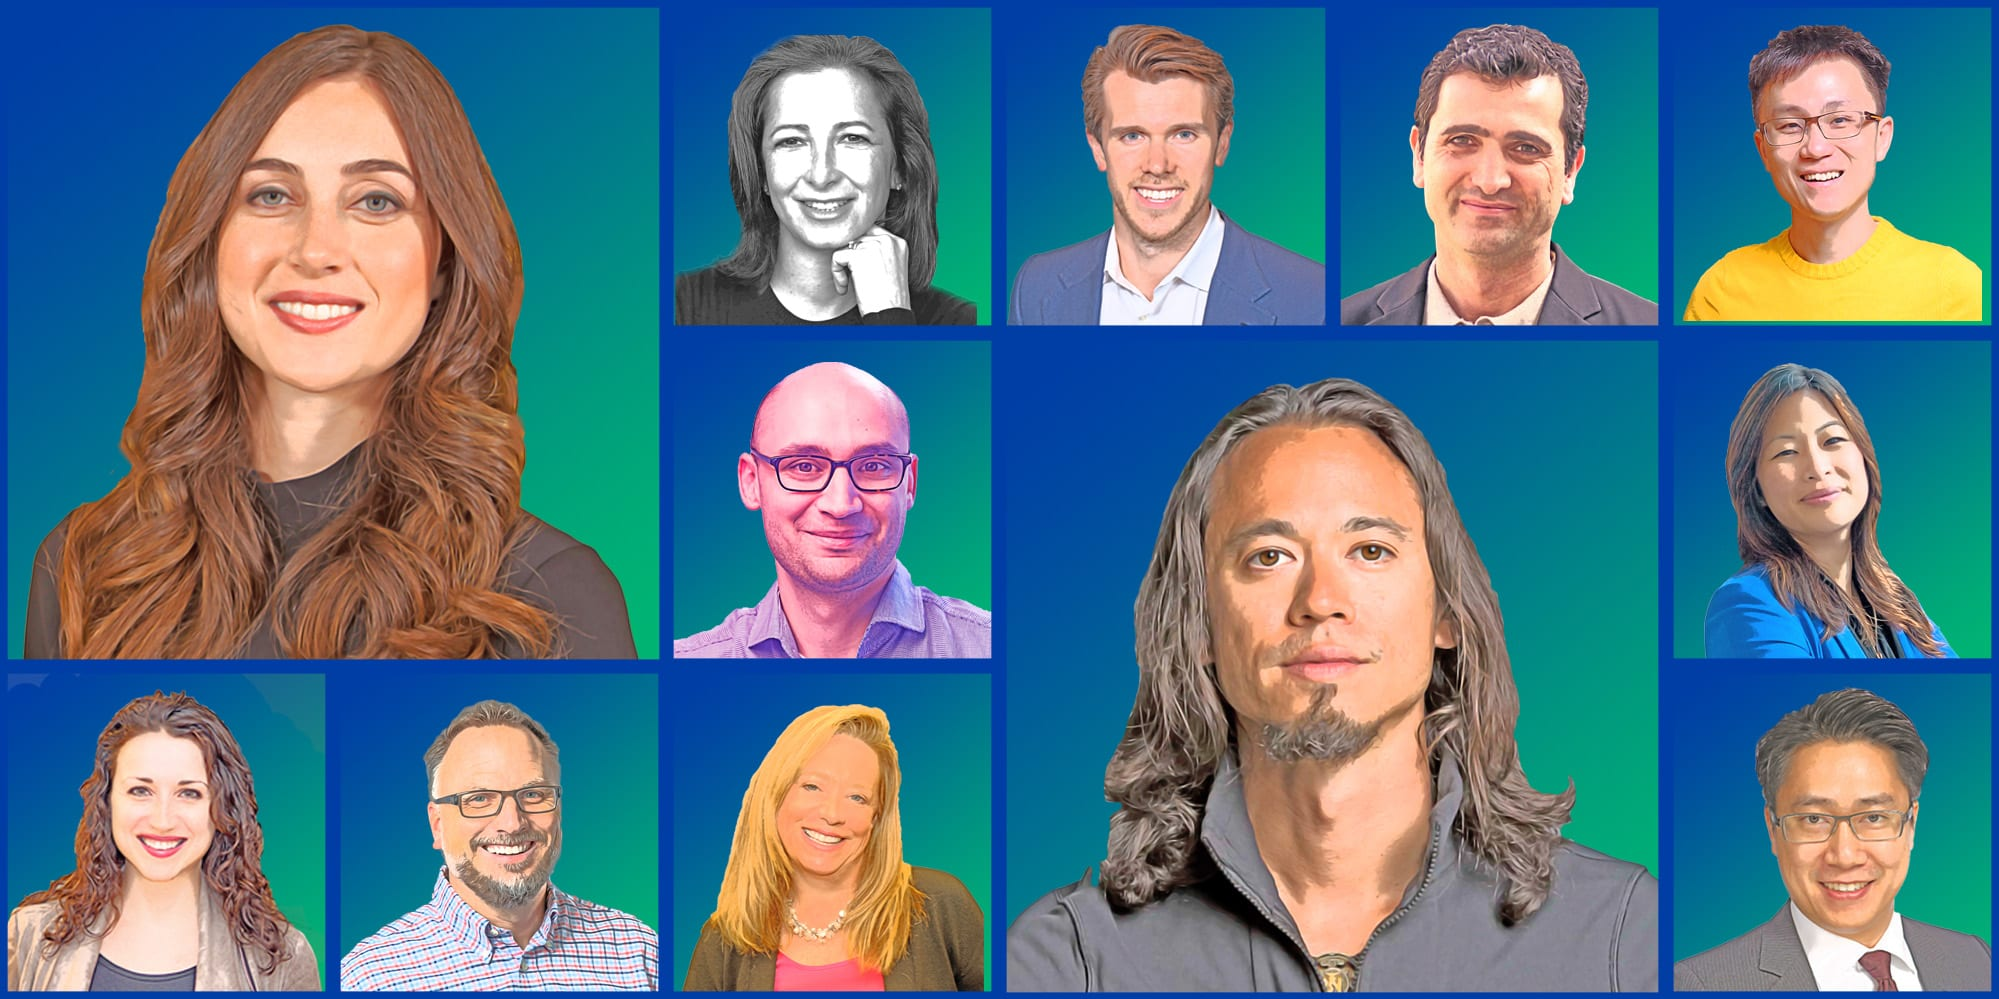 20 Canadian entrepreneurs to watch in 2020